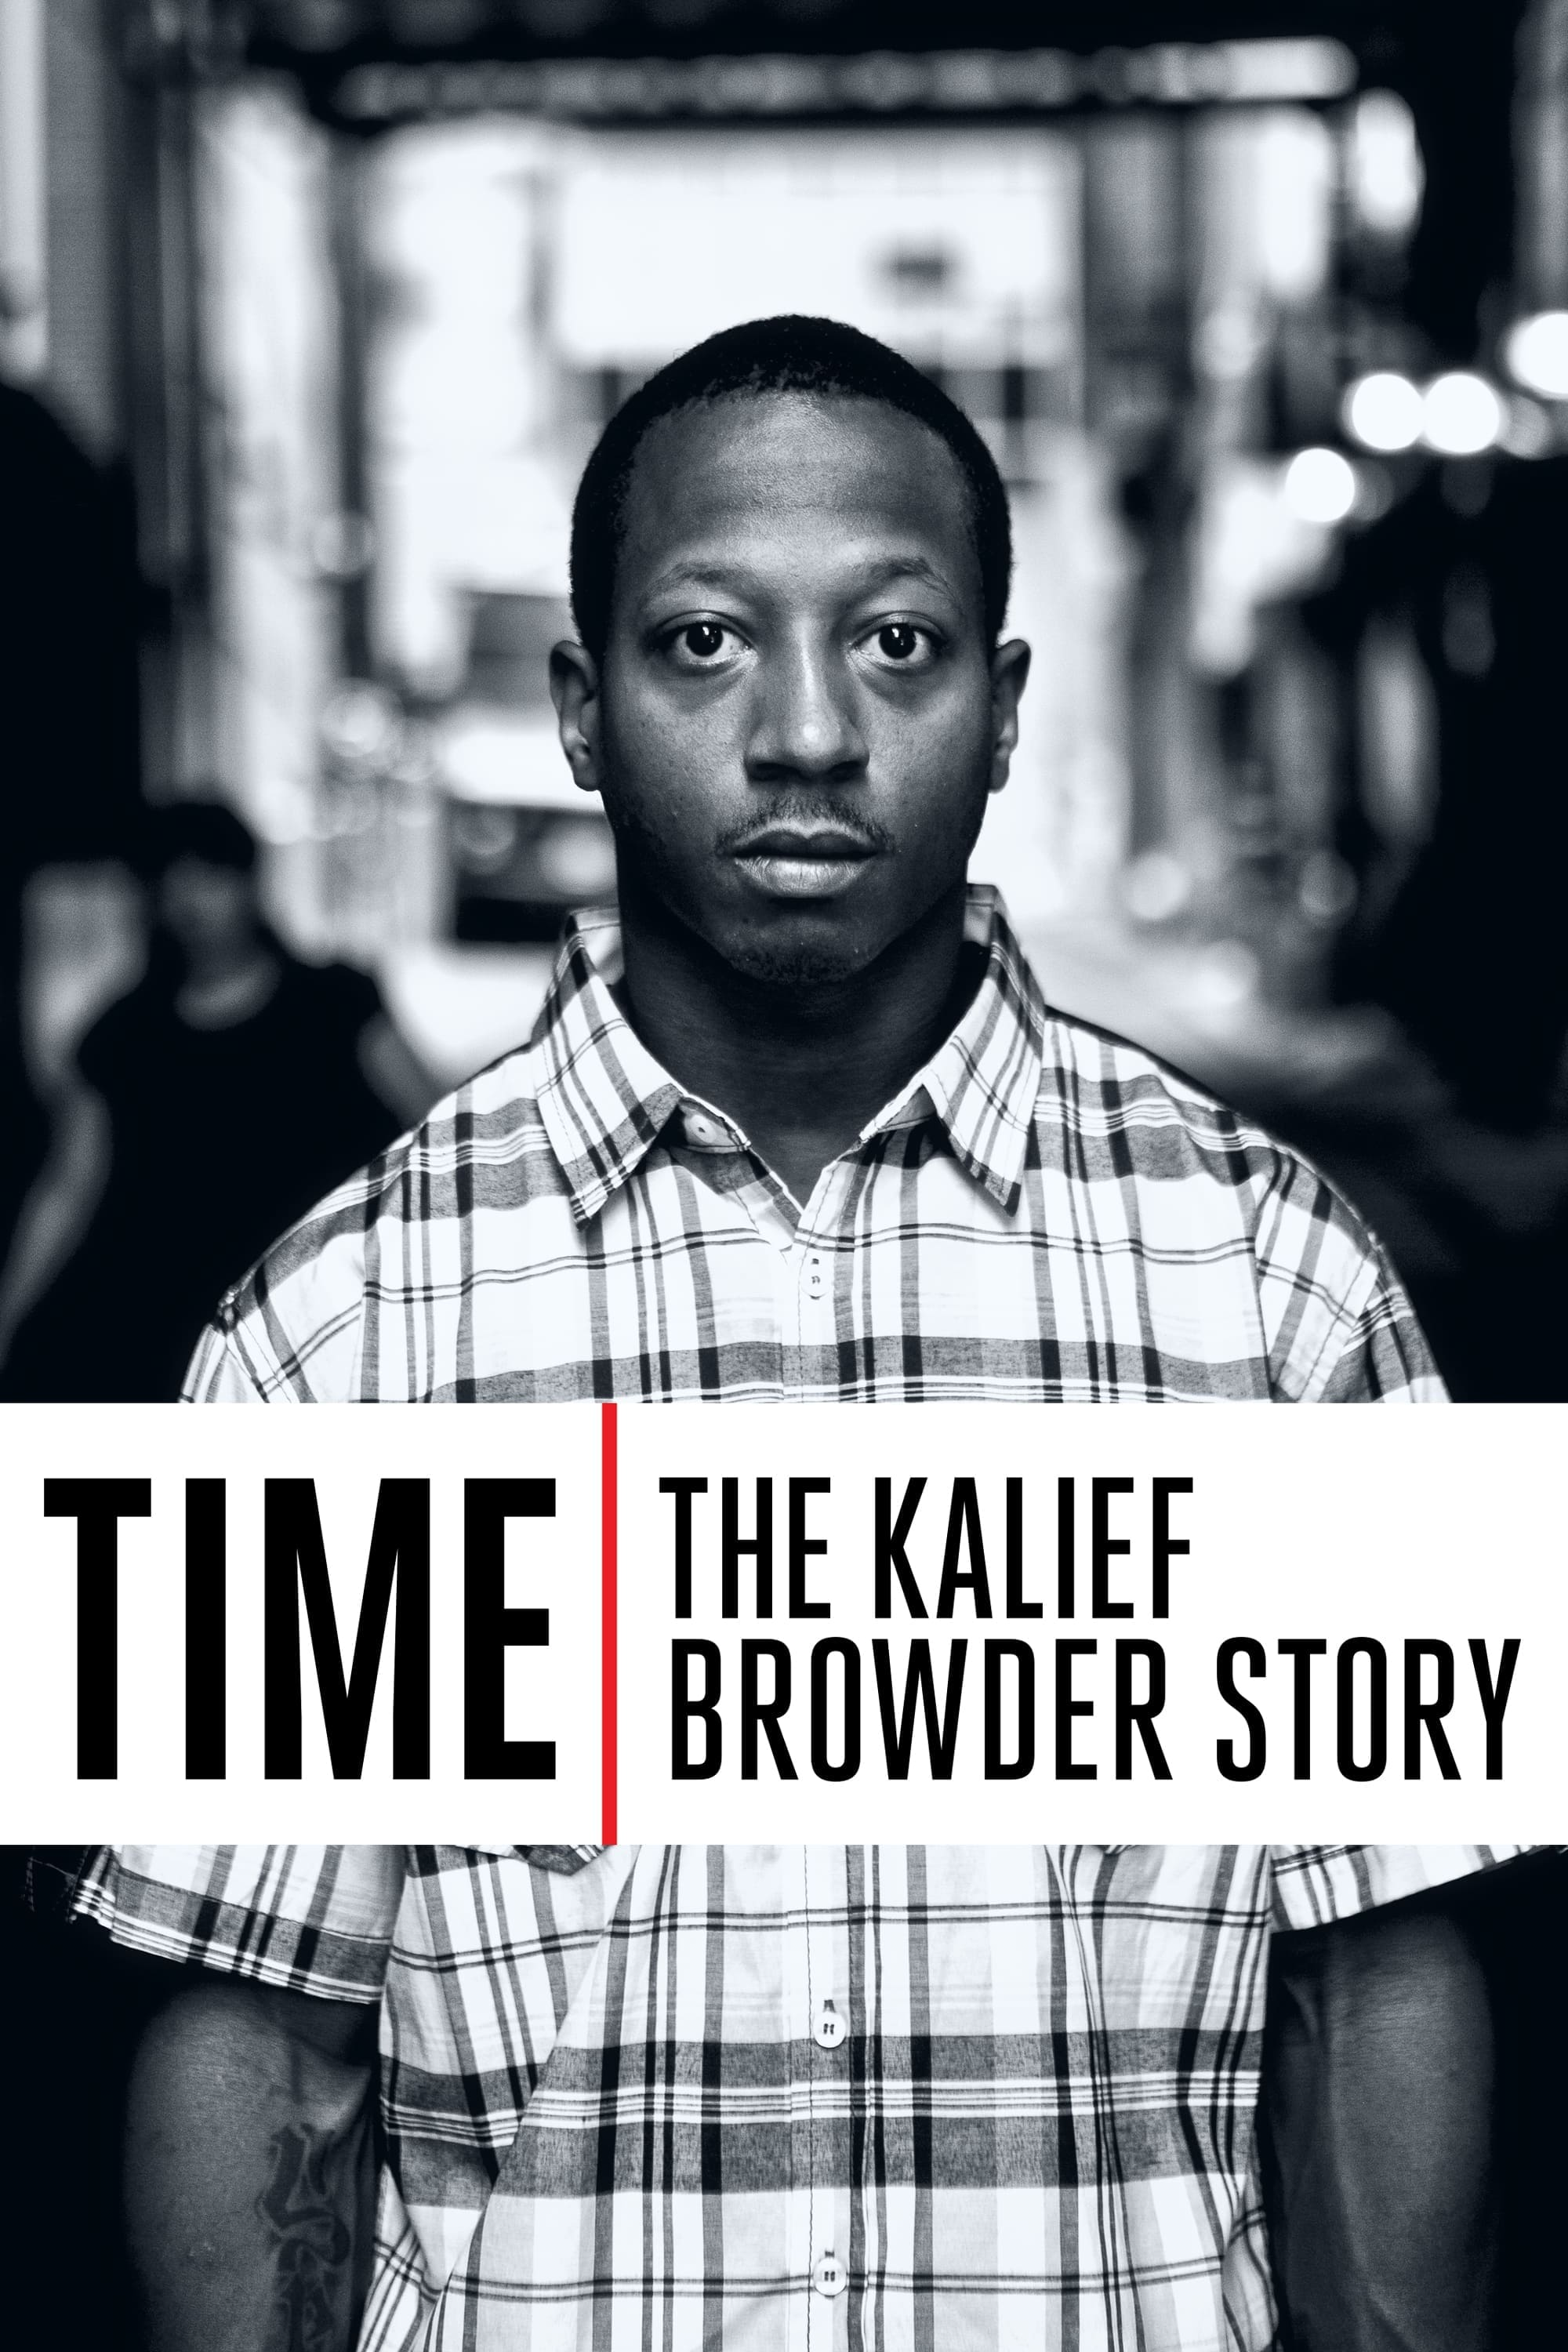 Time: The Kalief Browder Story – După gratii: Povestea lui Kalief Browder (2017)